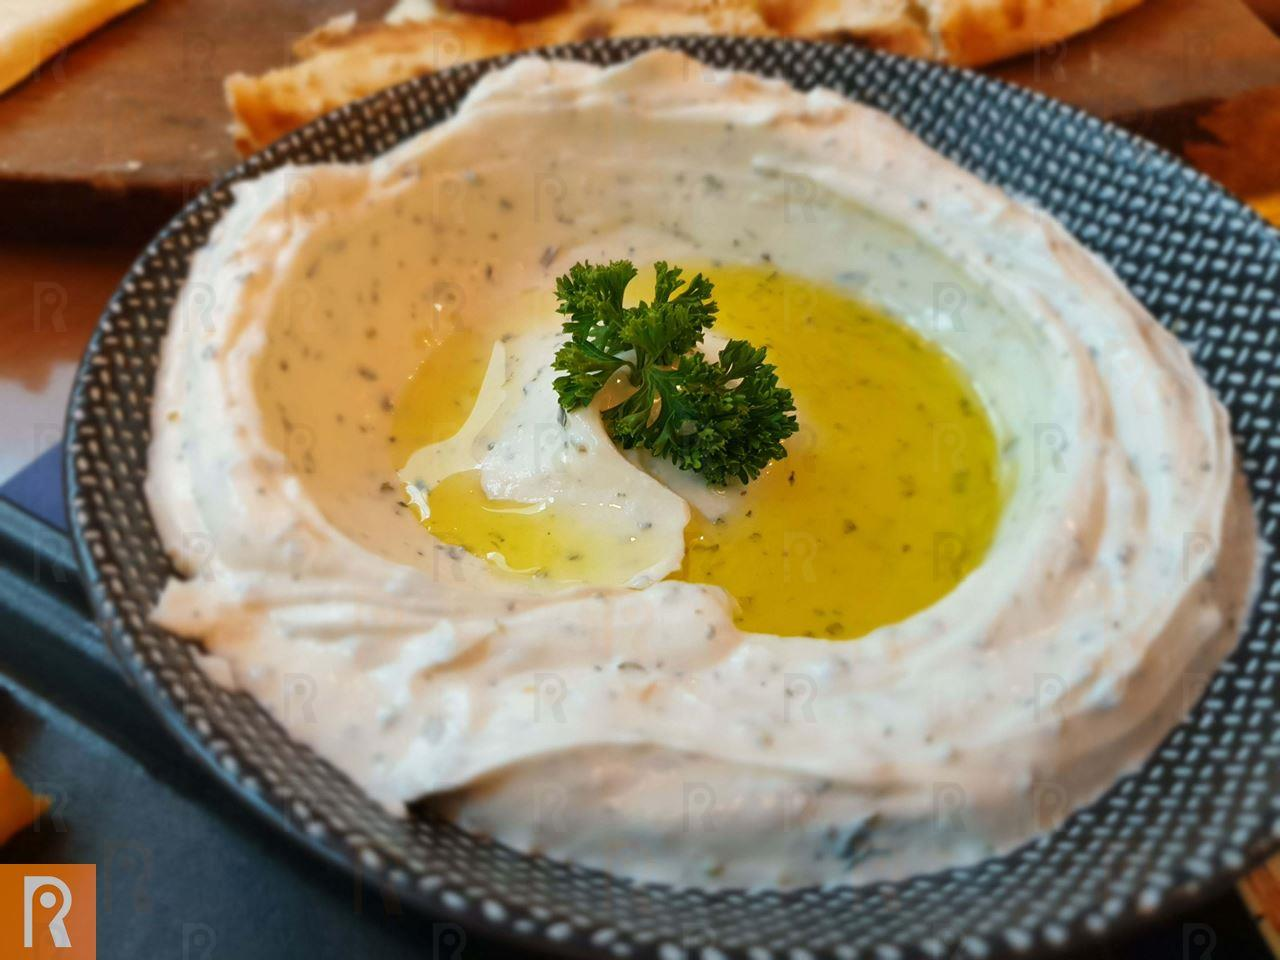 Turkish Breakfast at Mado Restaurant in The Avenues Mall